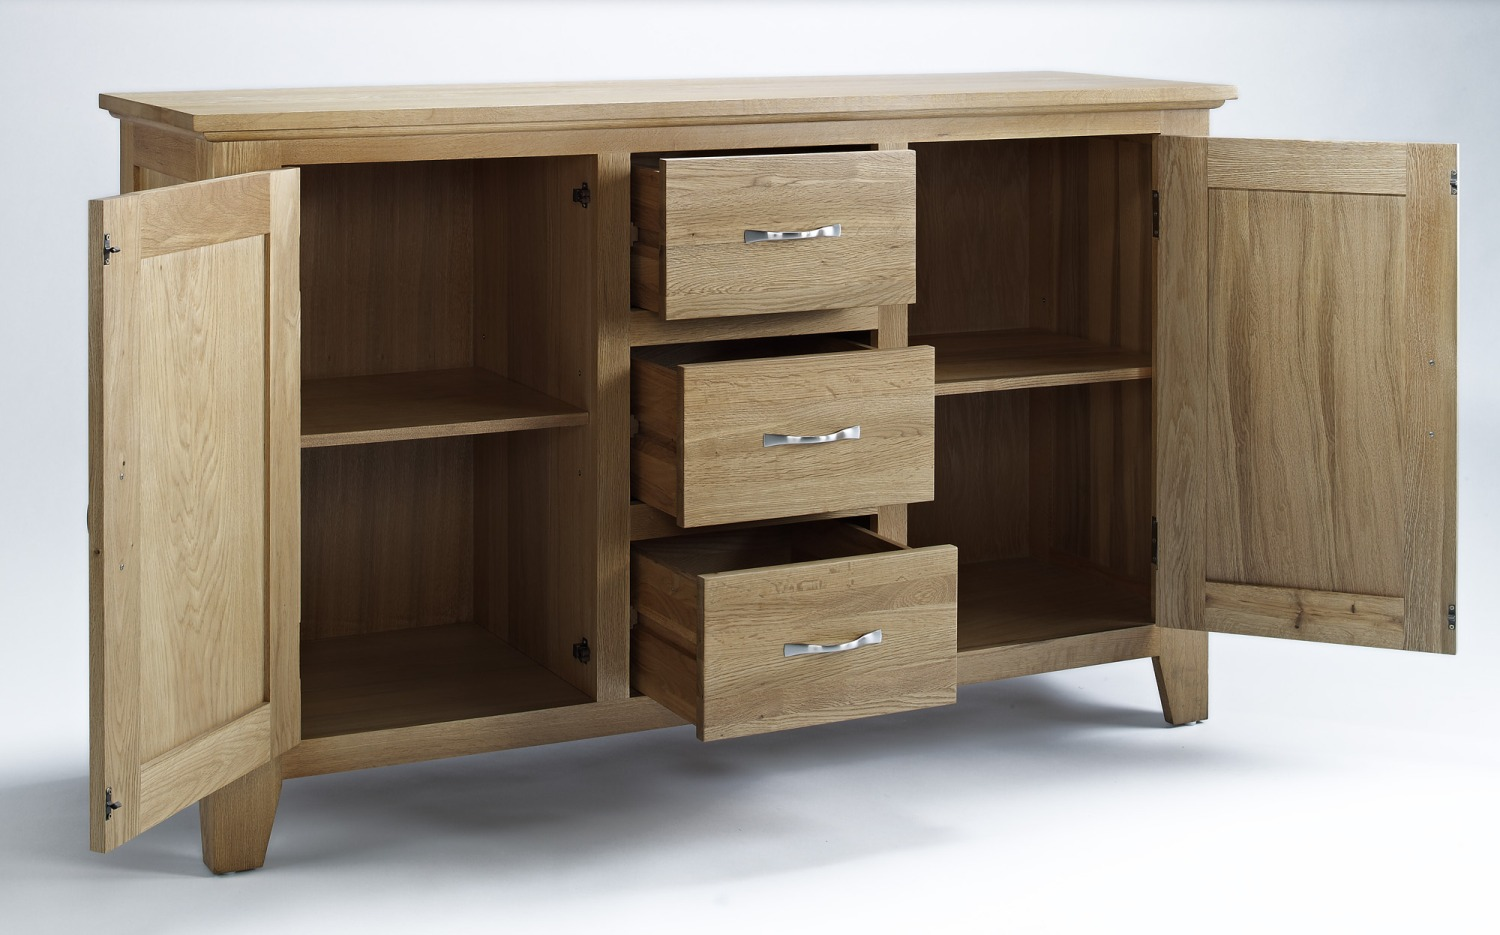 Solid Oak Furniture Large Living Dining Room Storage Sideboard EBay. Full resolution  portraiture, nominally Width 1500 Height 935 pixels, portraiture with #322419.